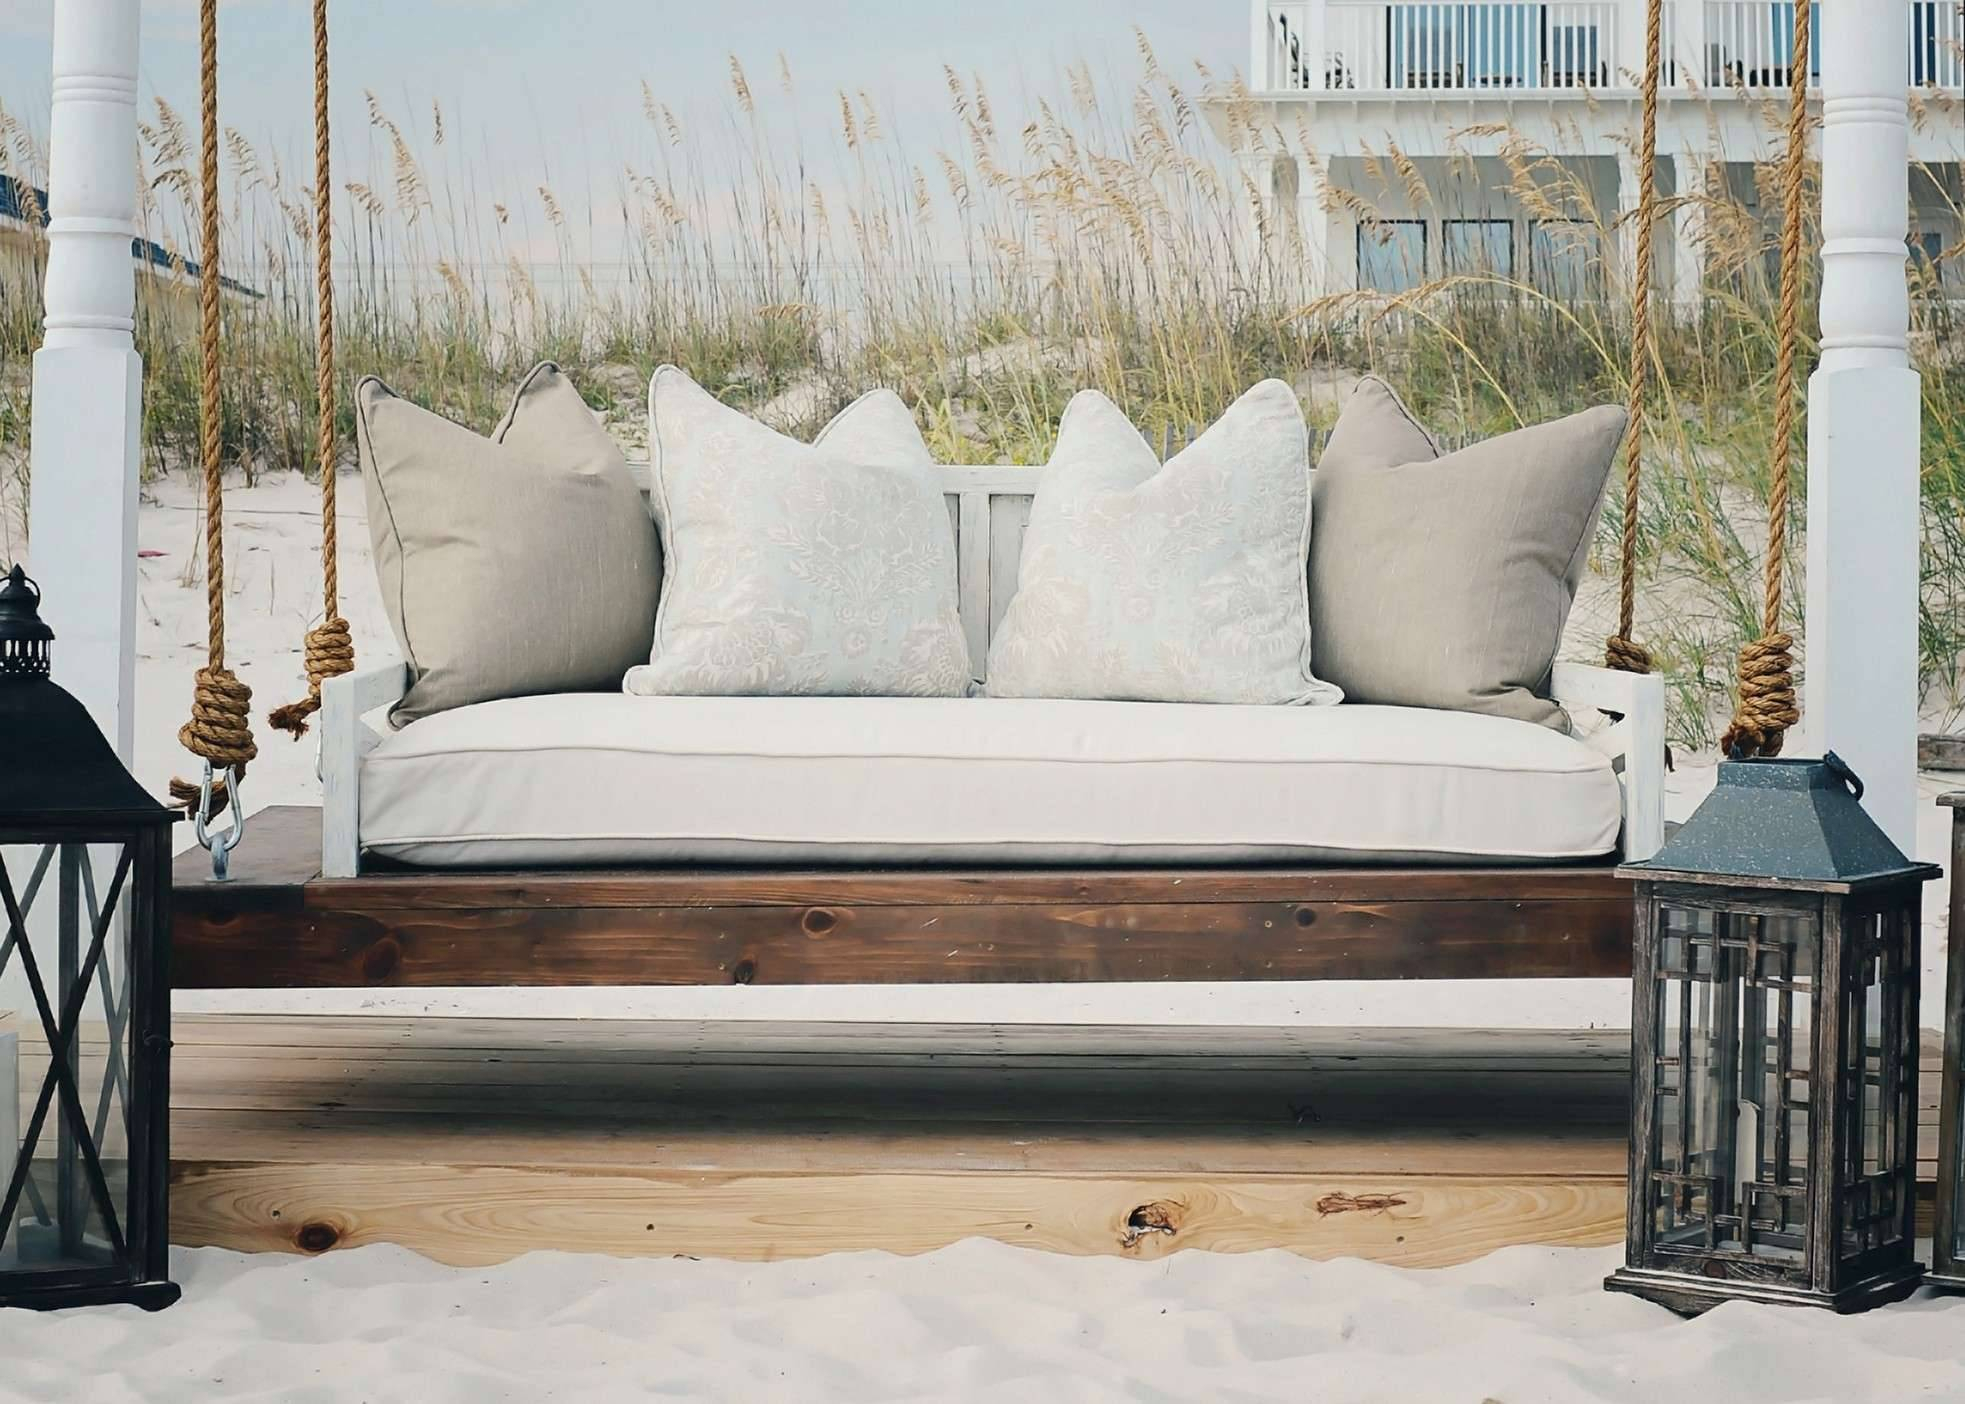 Scenic Swinging Porch Bed Swing Plans Living Room Hanging Throughout Day Bed Porch Swings (Image 21 of 25)